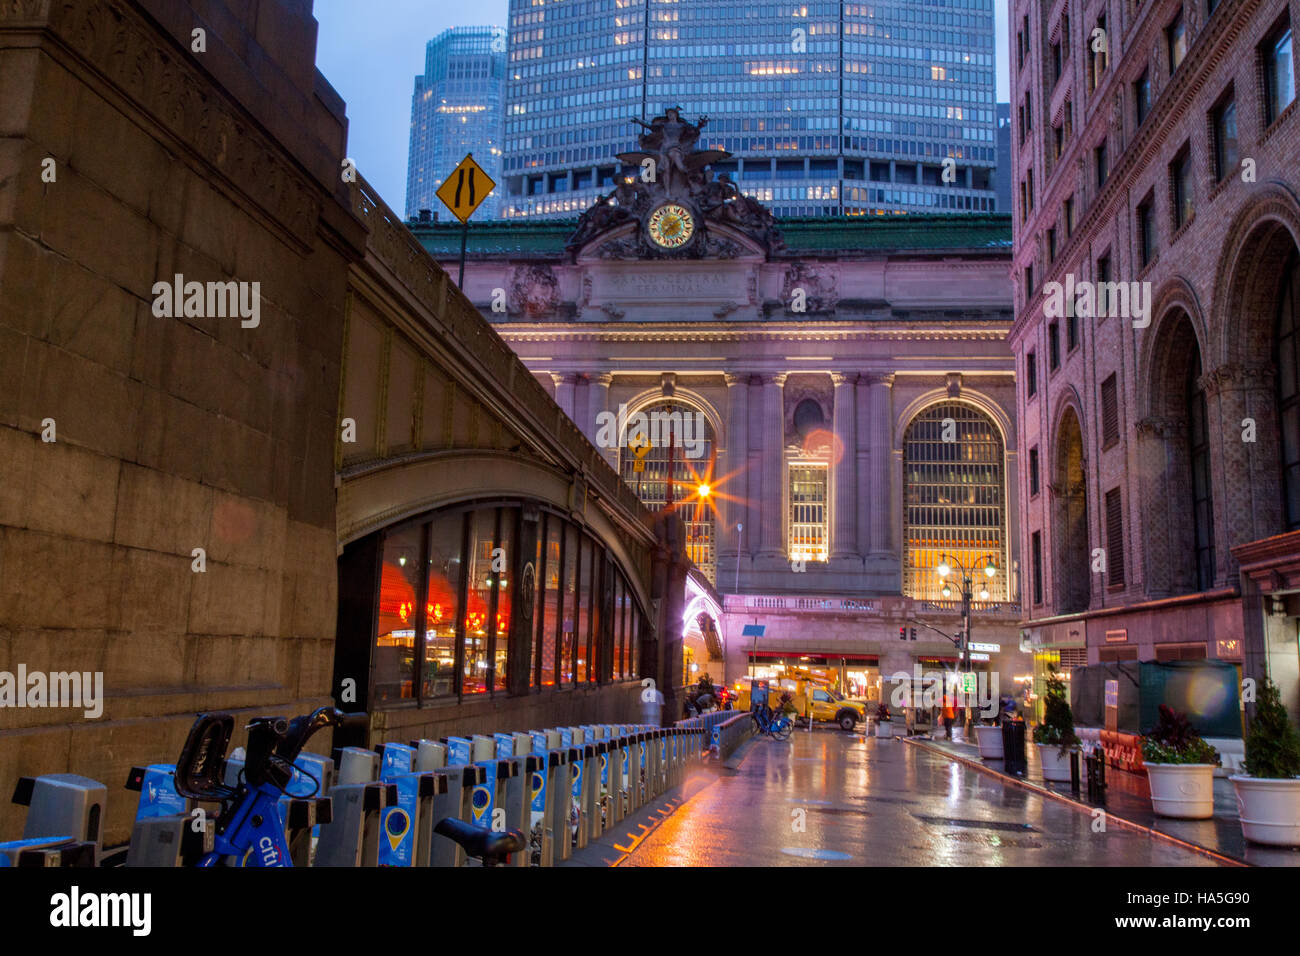 Grand central station exterior 42nd Street, New York City, United States of America. - Stock Image